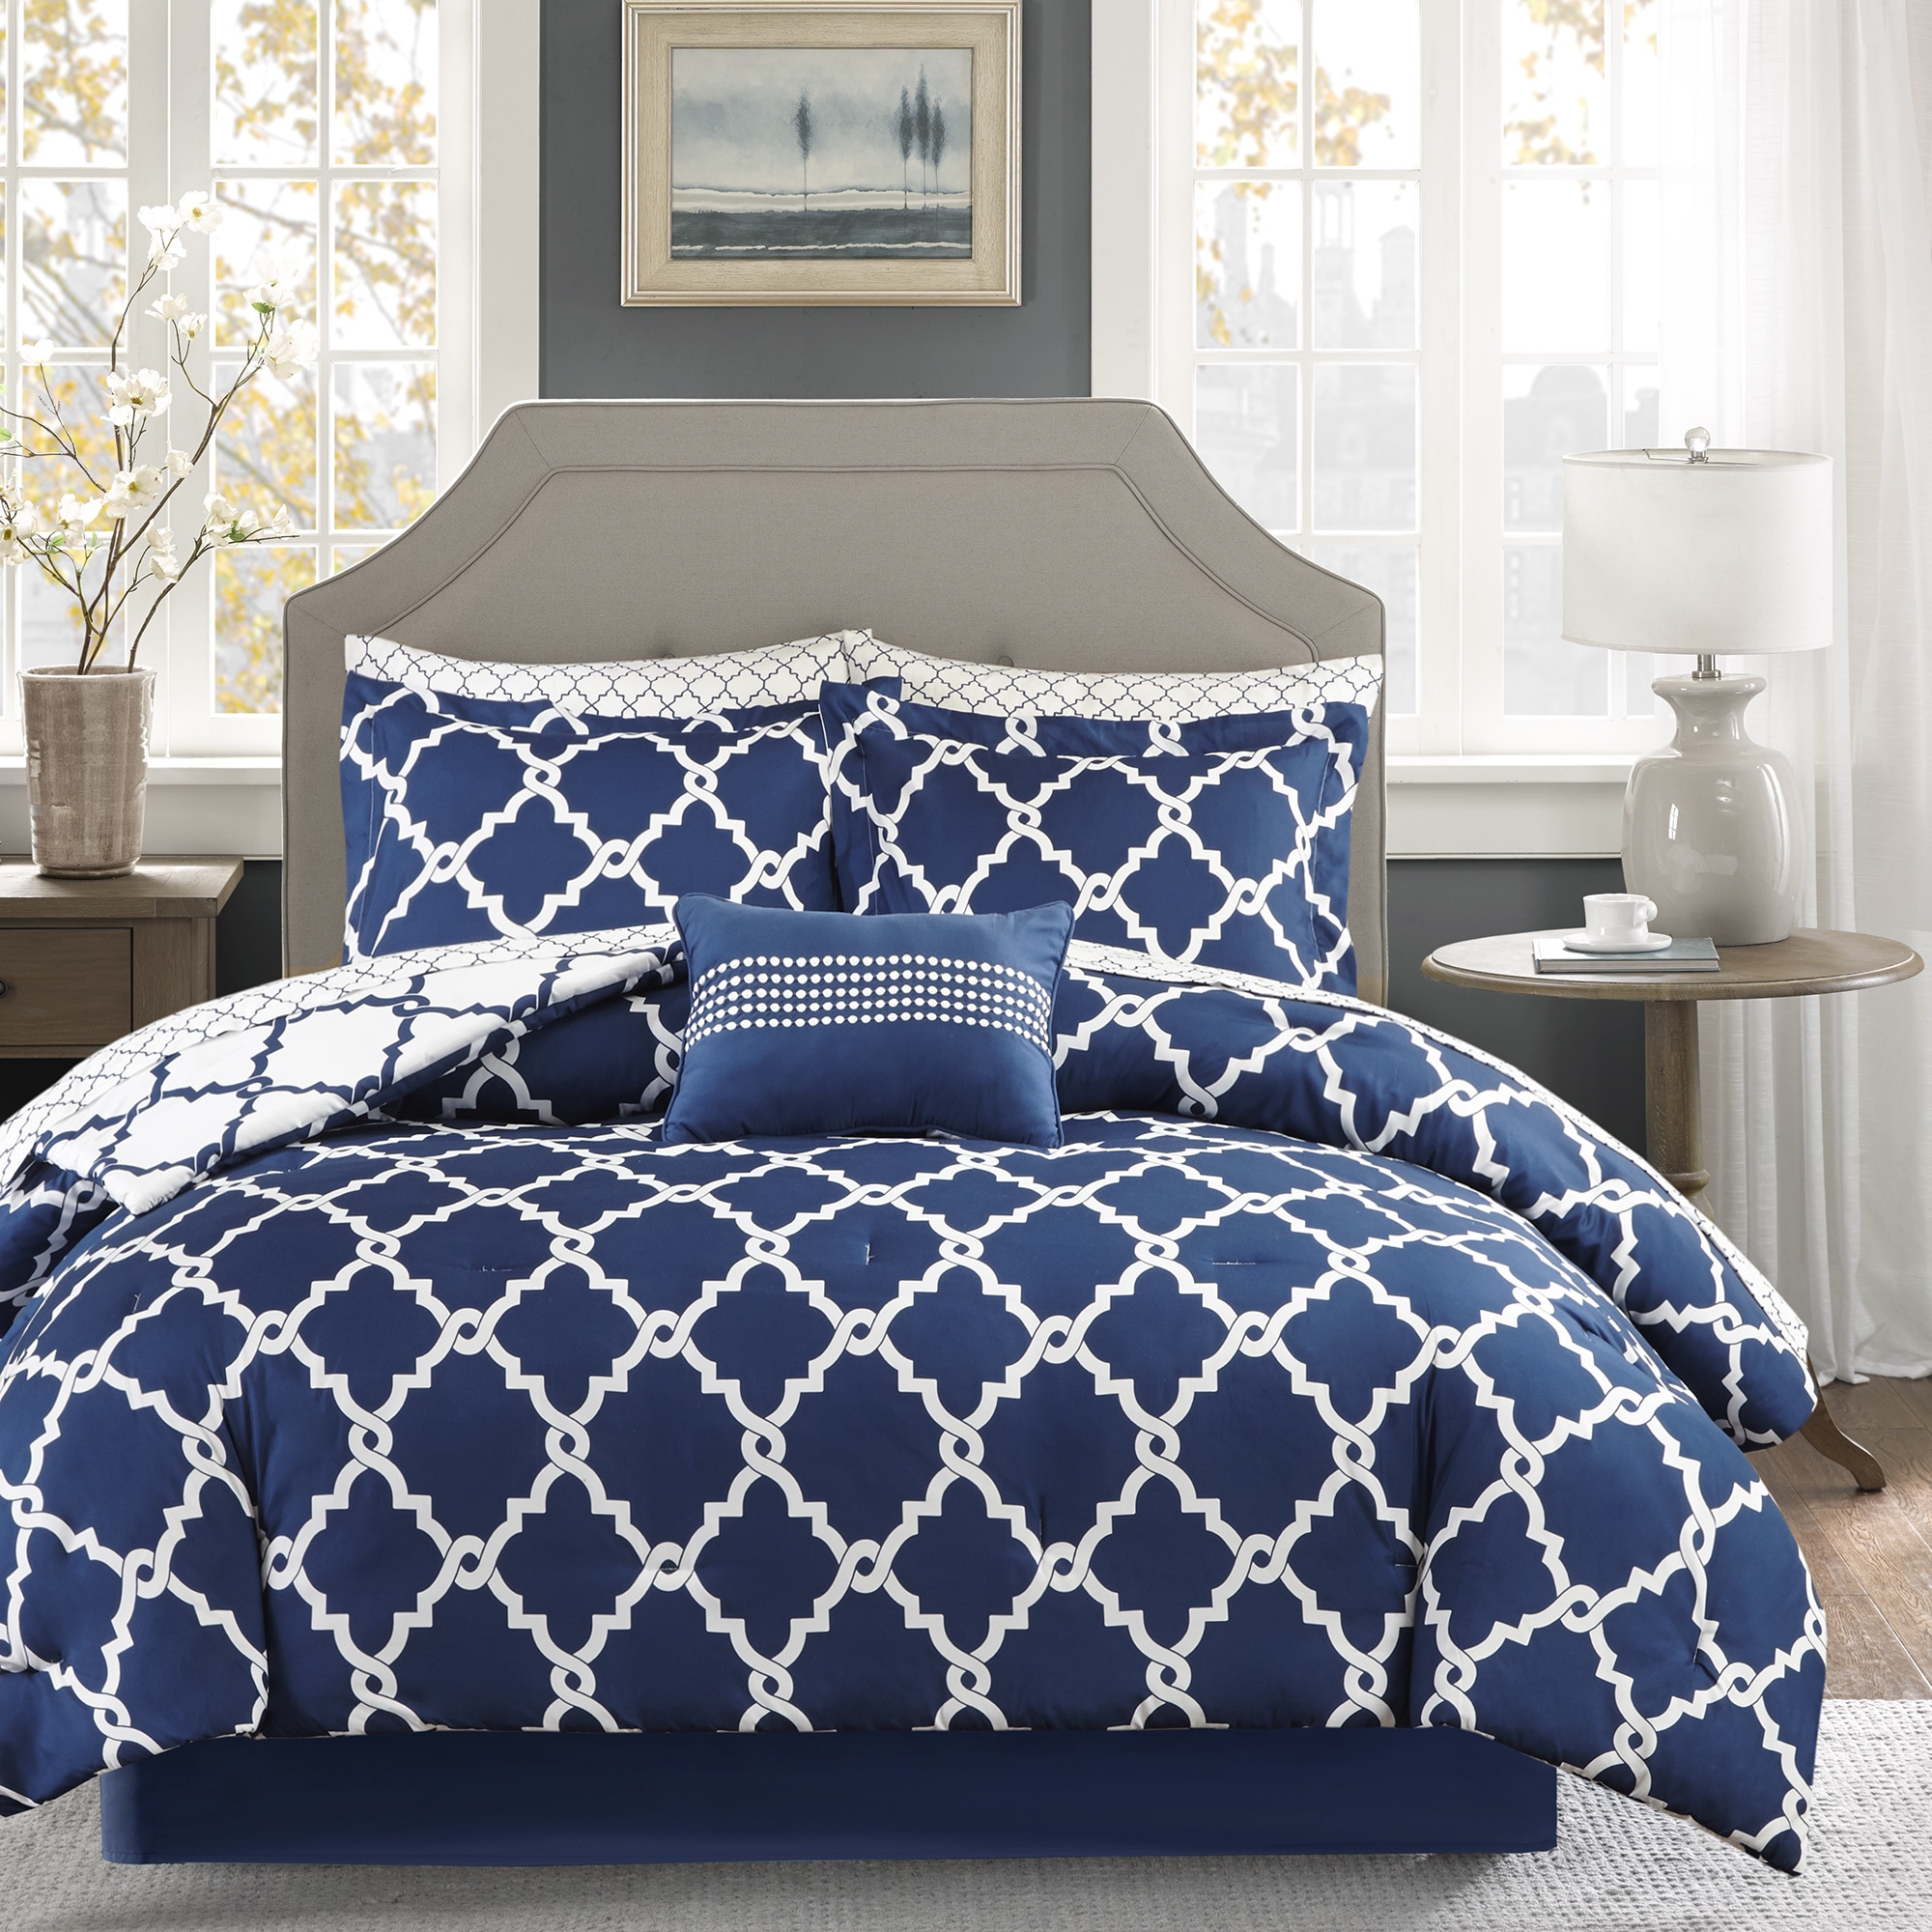 bedding com overstock pin bahama the deals shopping best on bed comforter tommy embroidery heirloom set